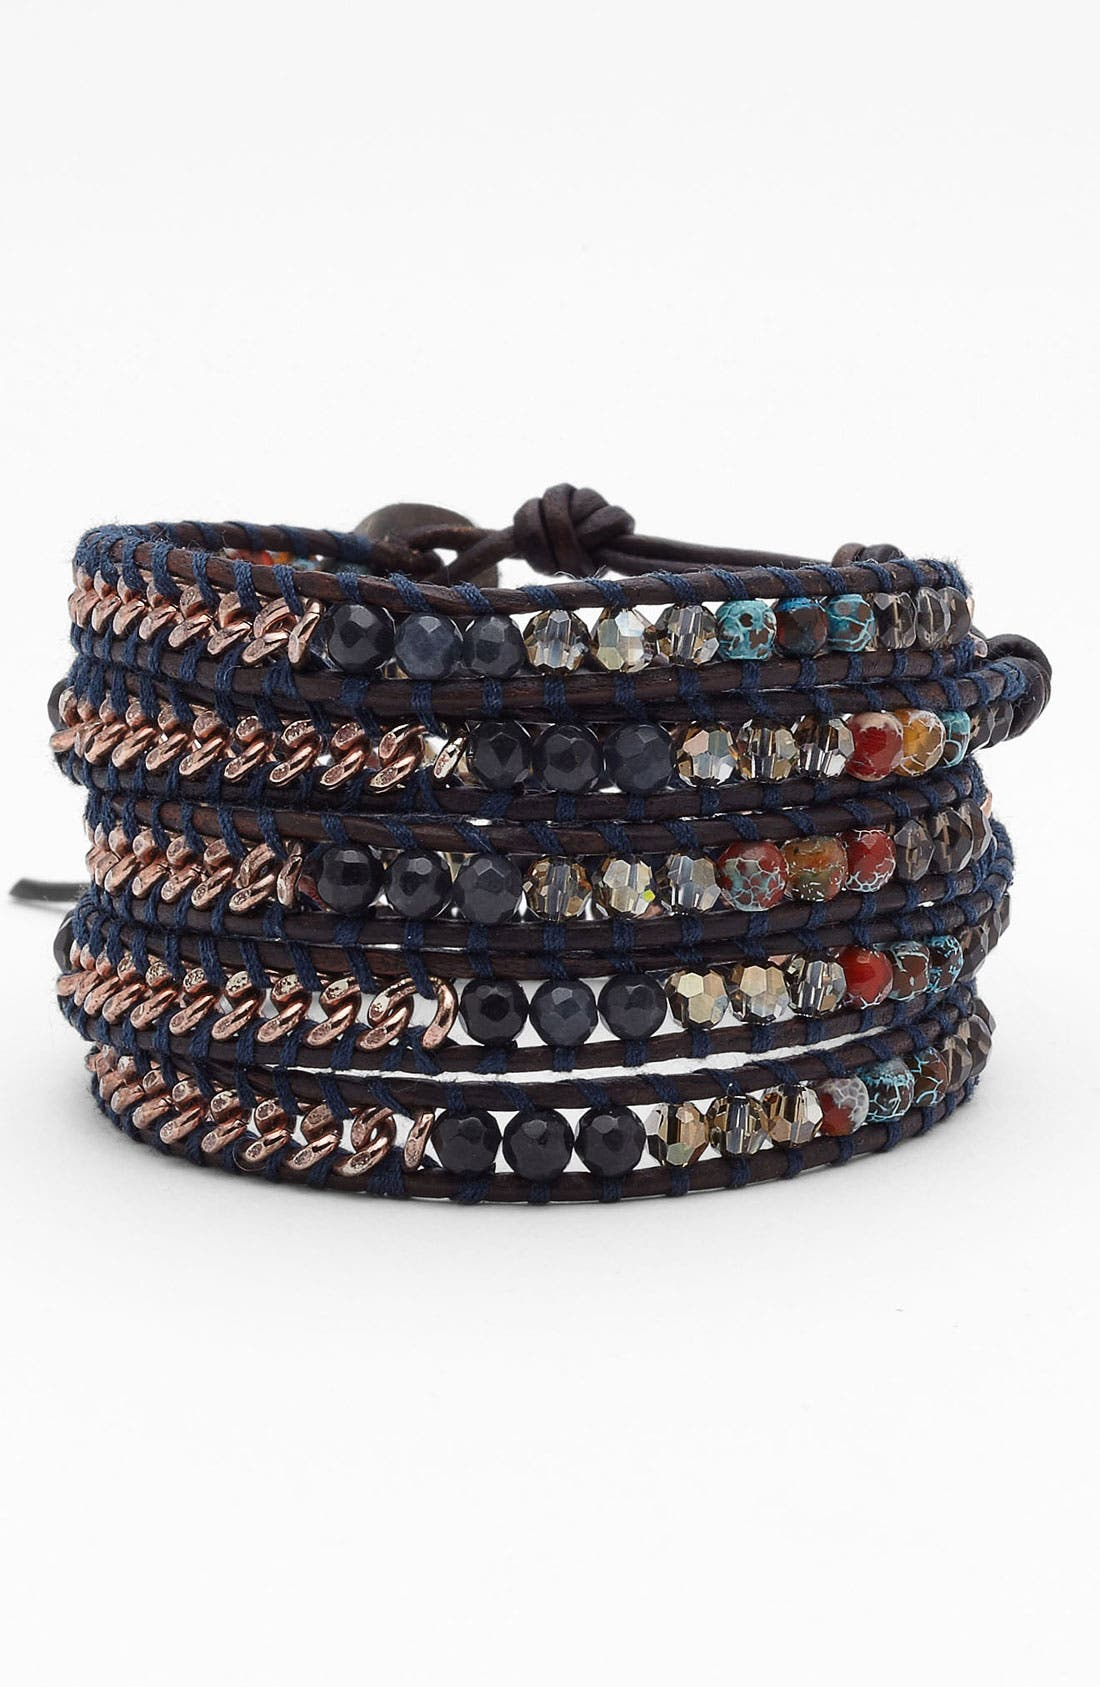 Alternate Image 1 Selected - Chan Luu 'Shale Mix' Wrap Bracelet